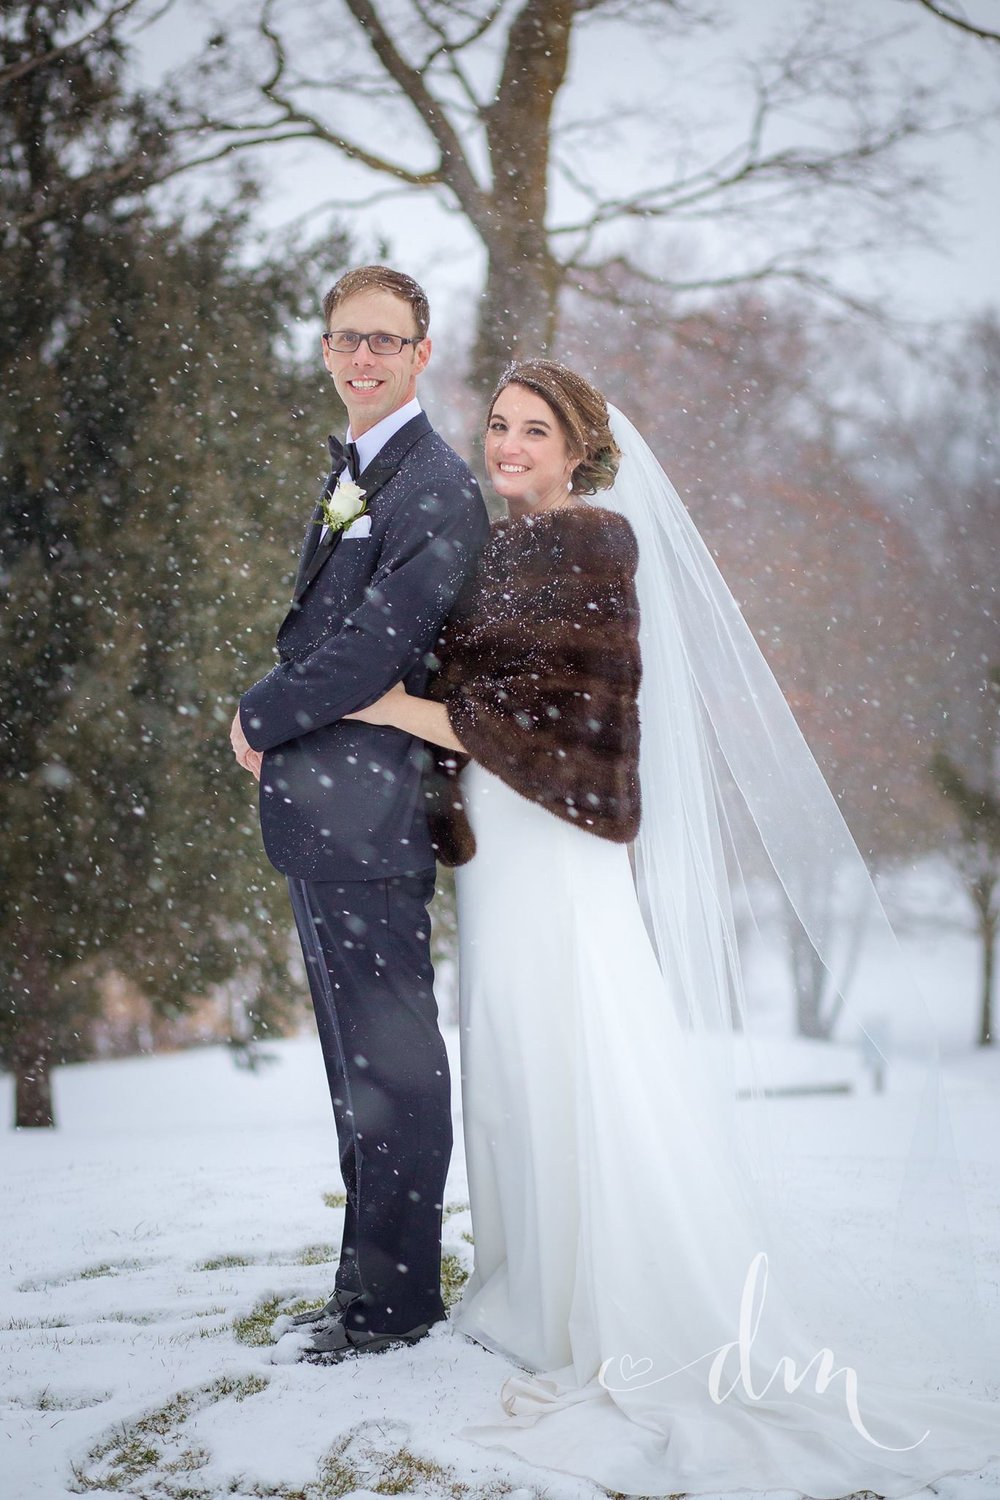 It doesn't get more picturesque than snowflakes freshly falling into portraits of the bride and groom. Venue:  St. Marys Golf & Country Club . Photography:  Danielle Mahoney Photography .